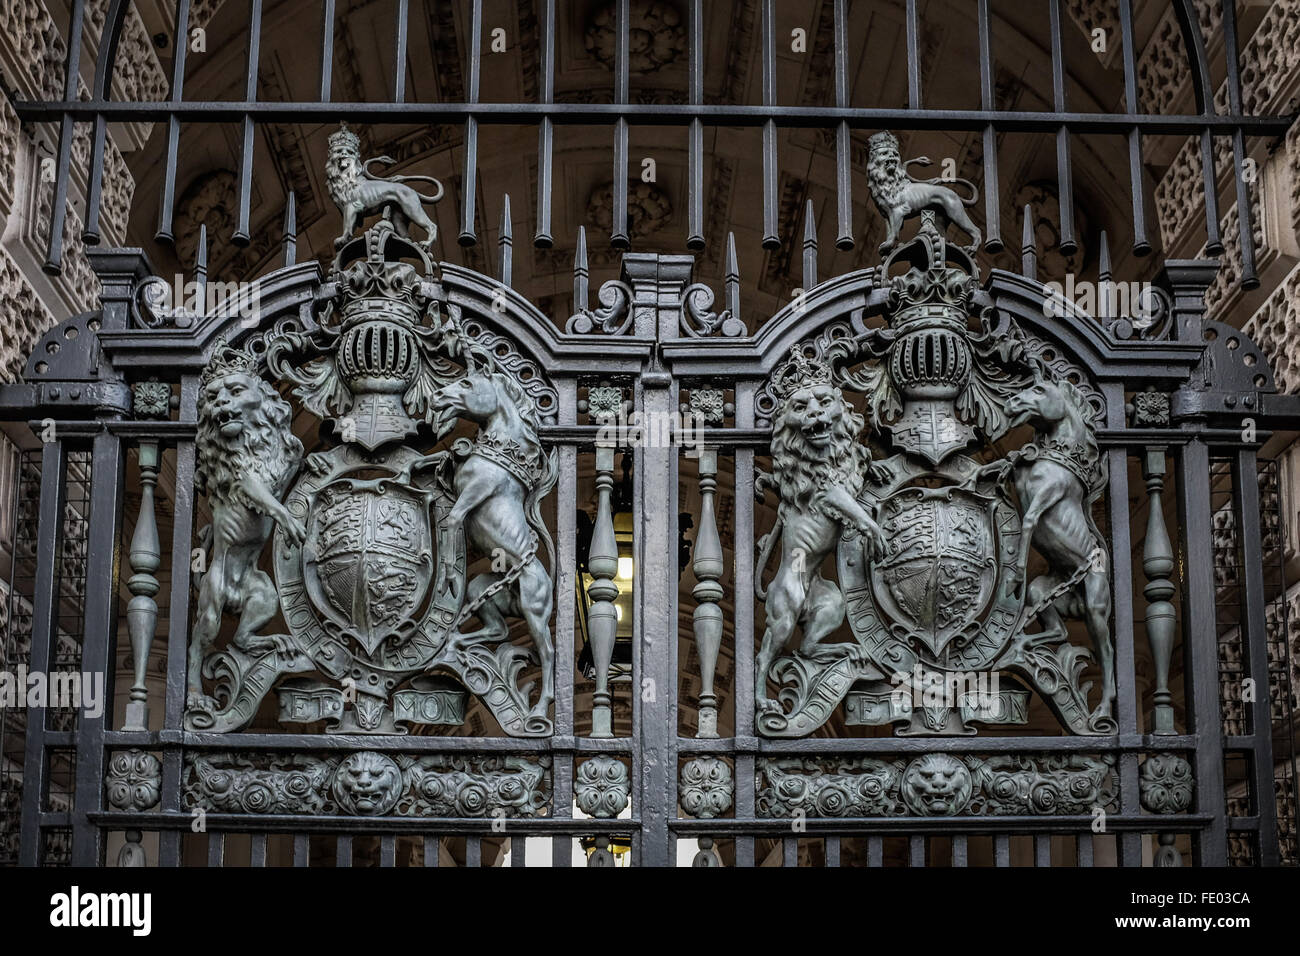 Lion and Unicorn designed metal double gates seen in closeup at Government offices in Great George Street, London, - Stock Image